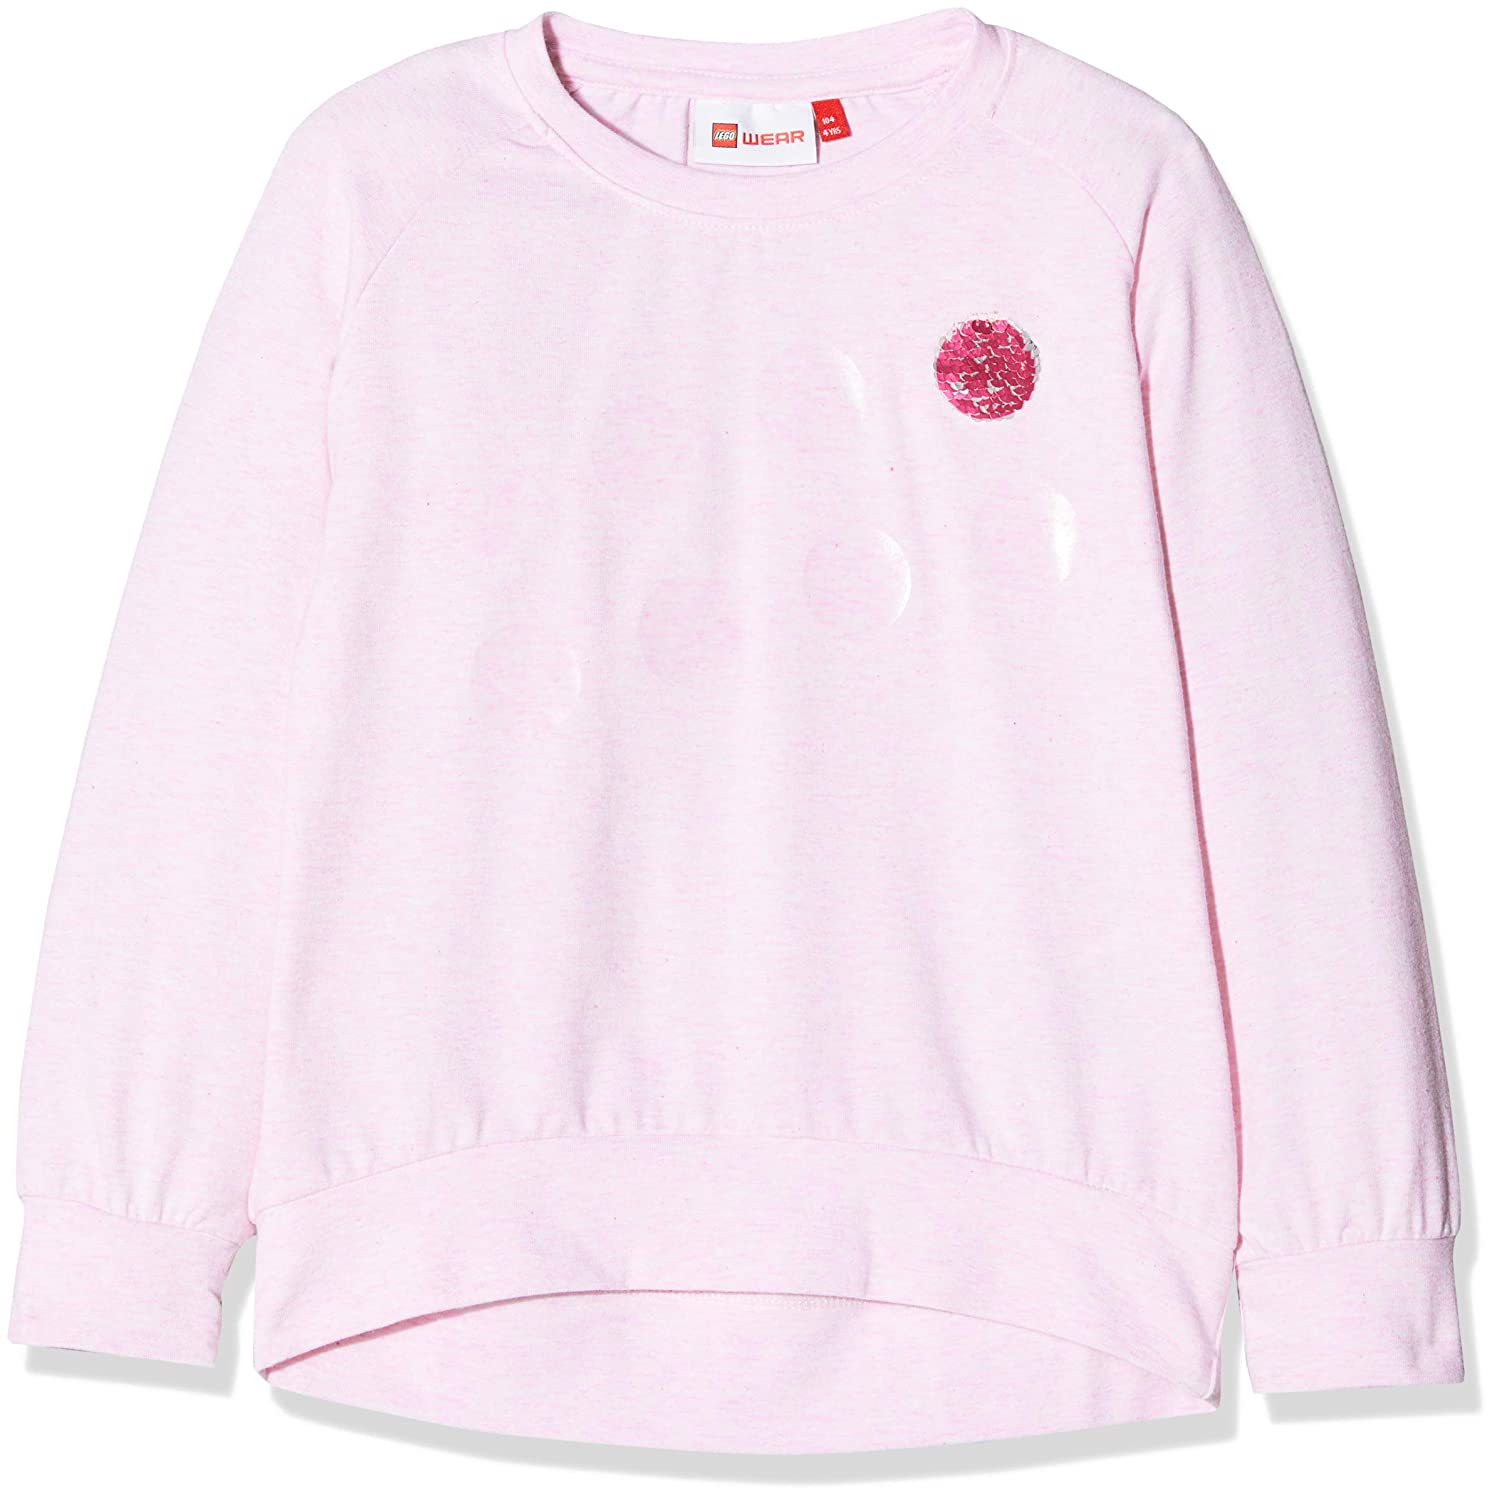 Lego Wear T Shirt Manches Longues Fille